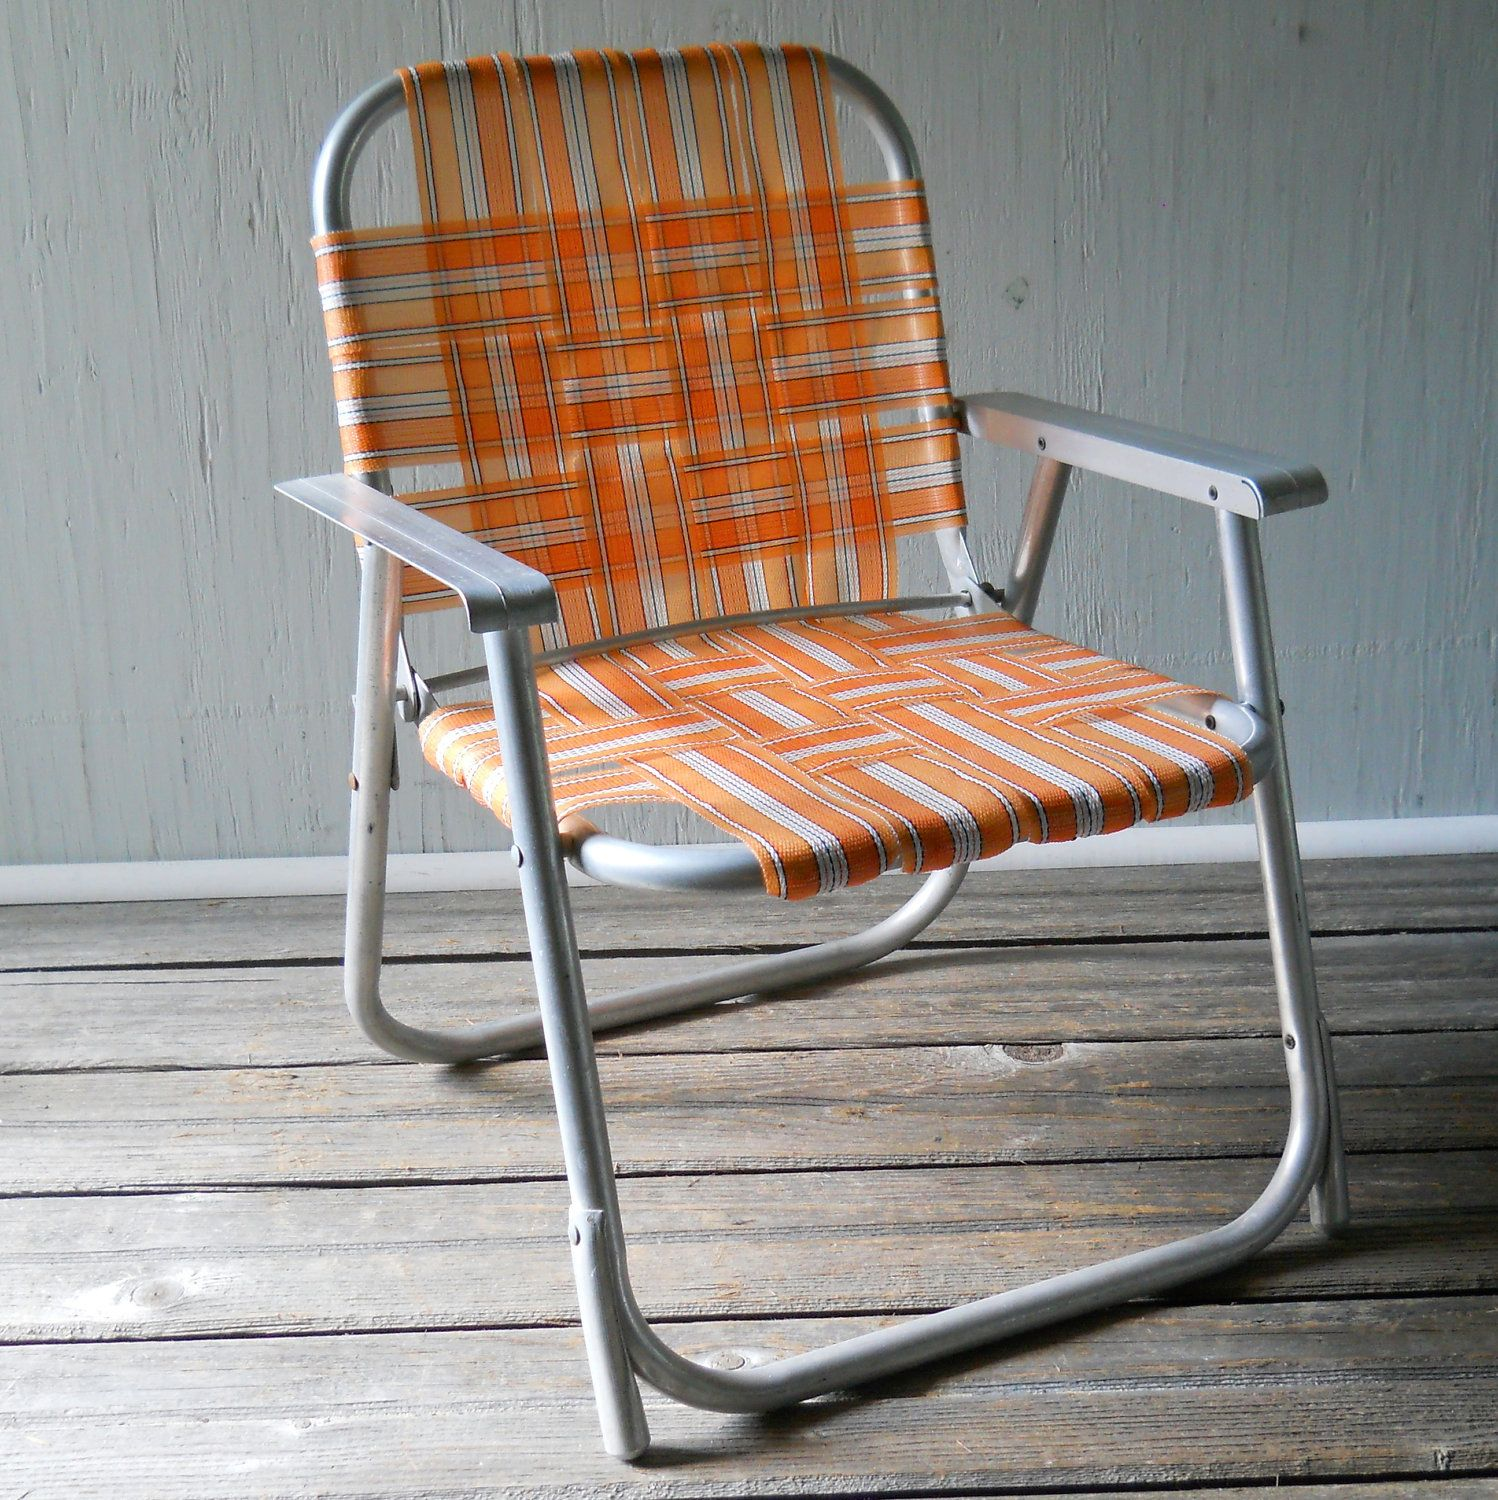 Vintage Folding Lawn Chair Child s Aluminum Folding Chair Orange